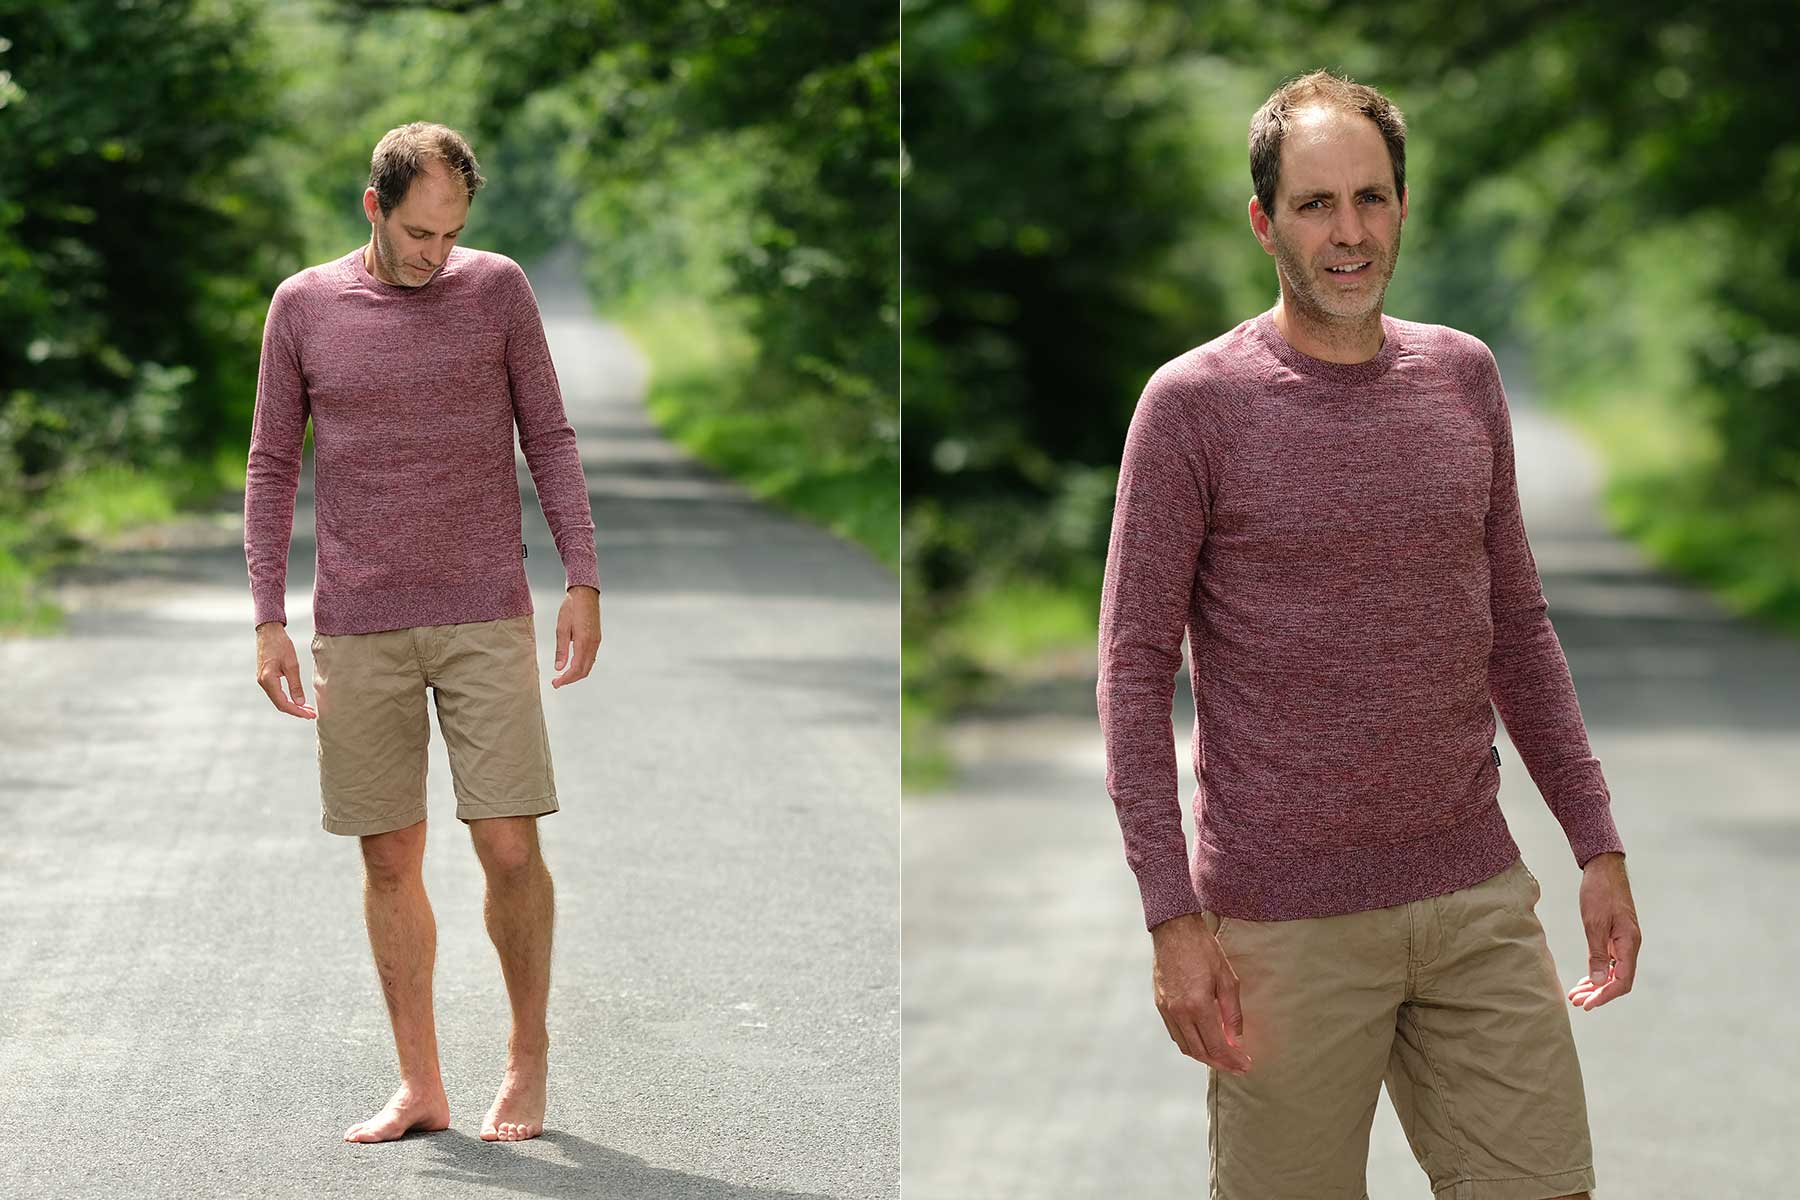 Barbour Travel Apparel | Barbour City Neuston Short and Space Dye Crew